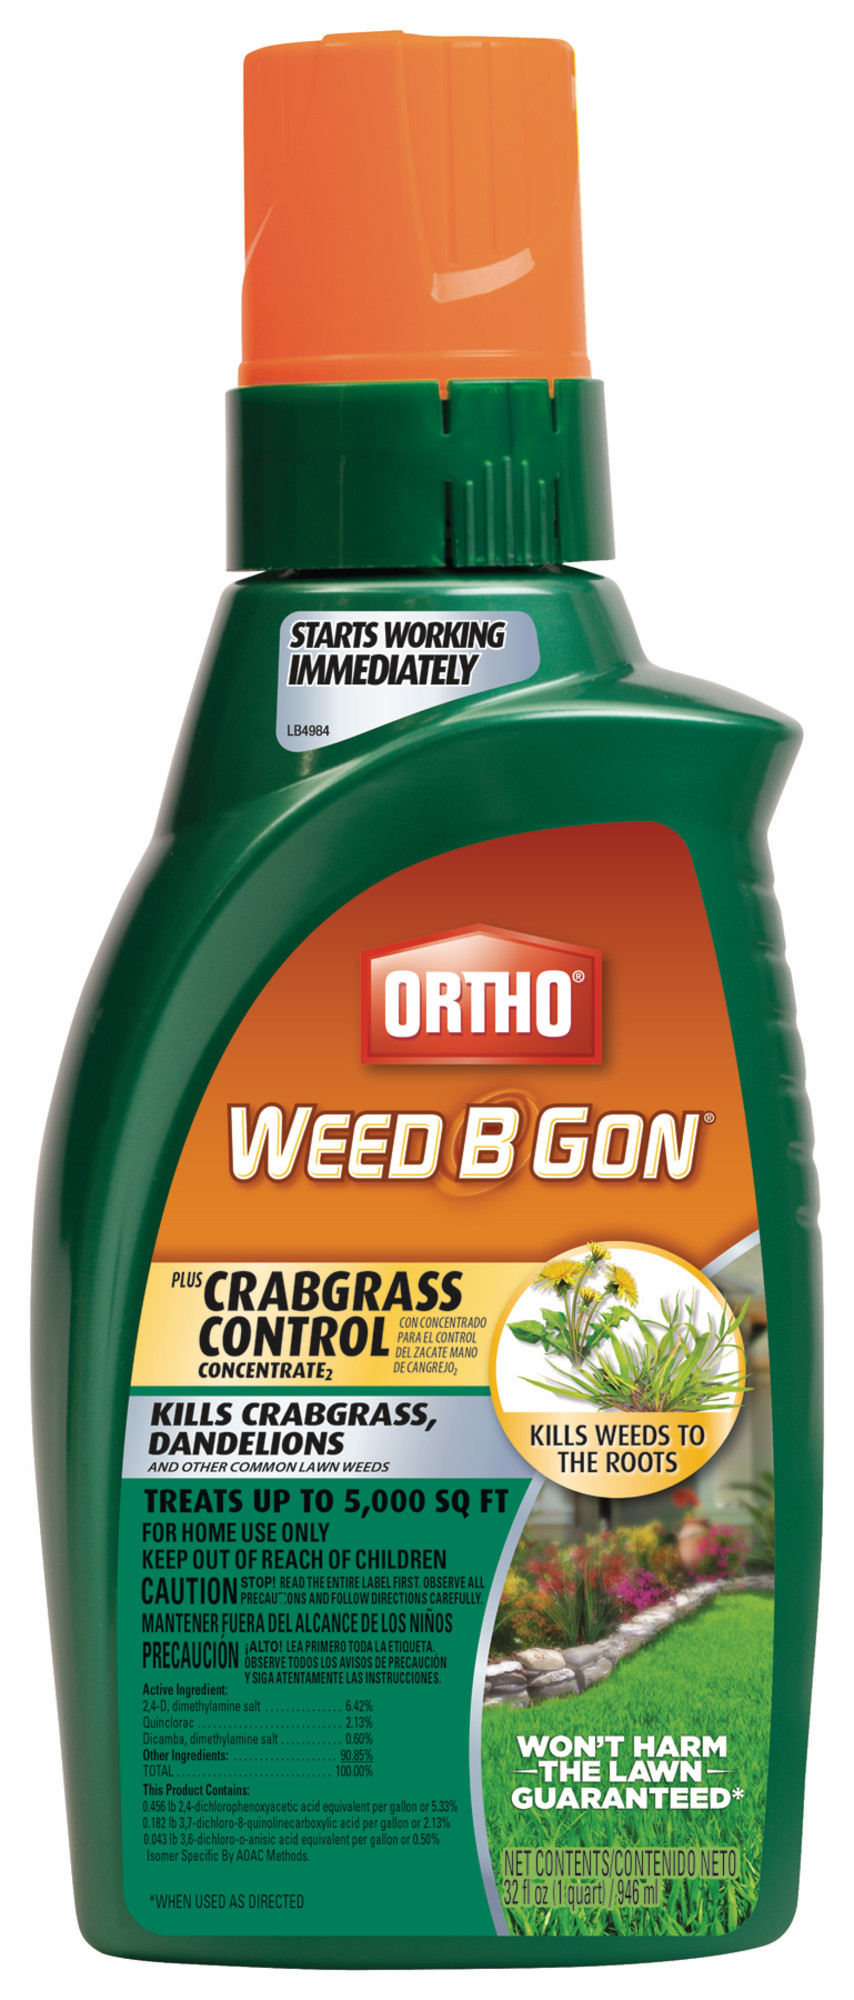 Weed B Gon Max Plus Crabgrass Control Concentrate